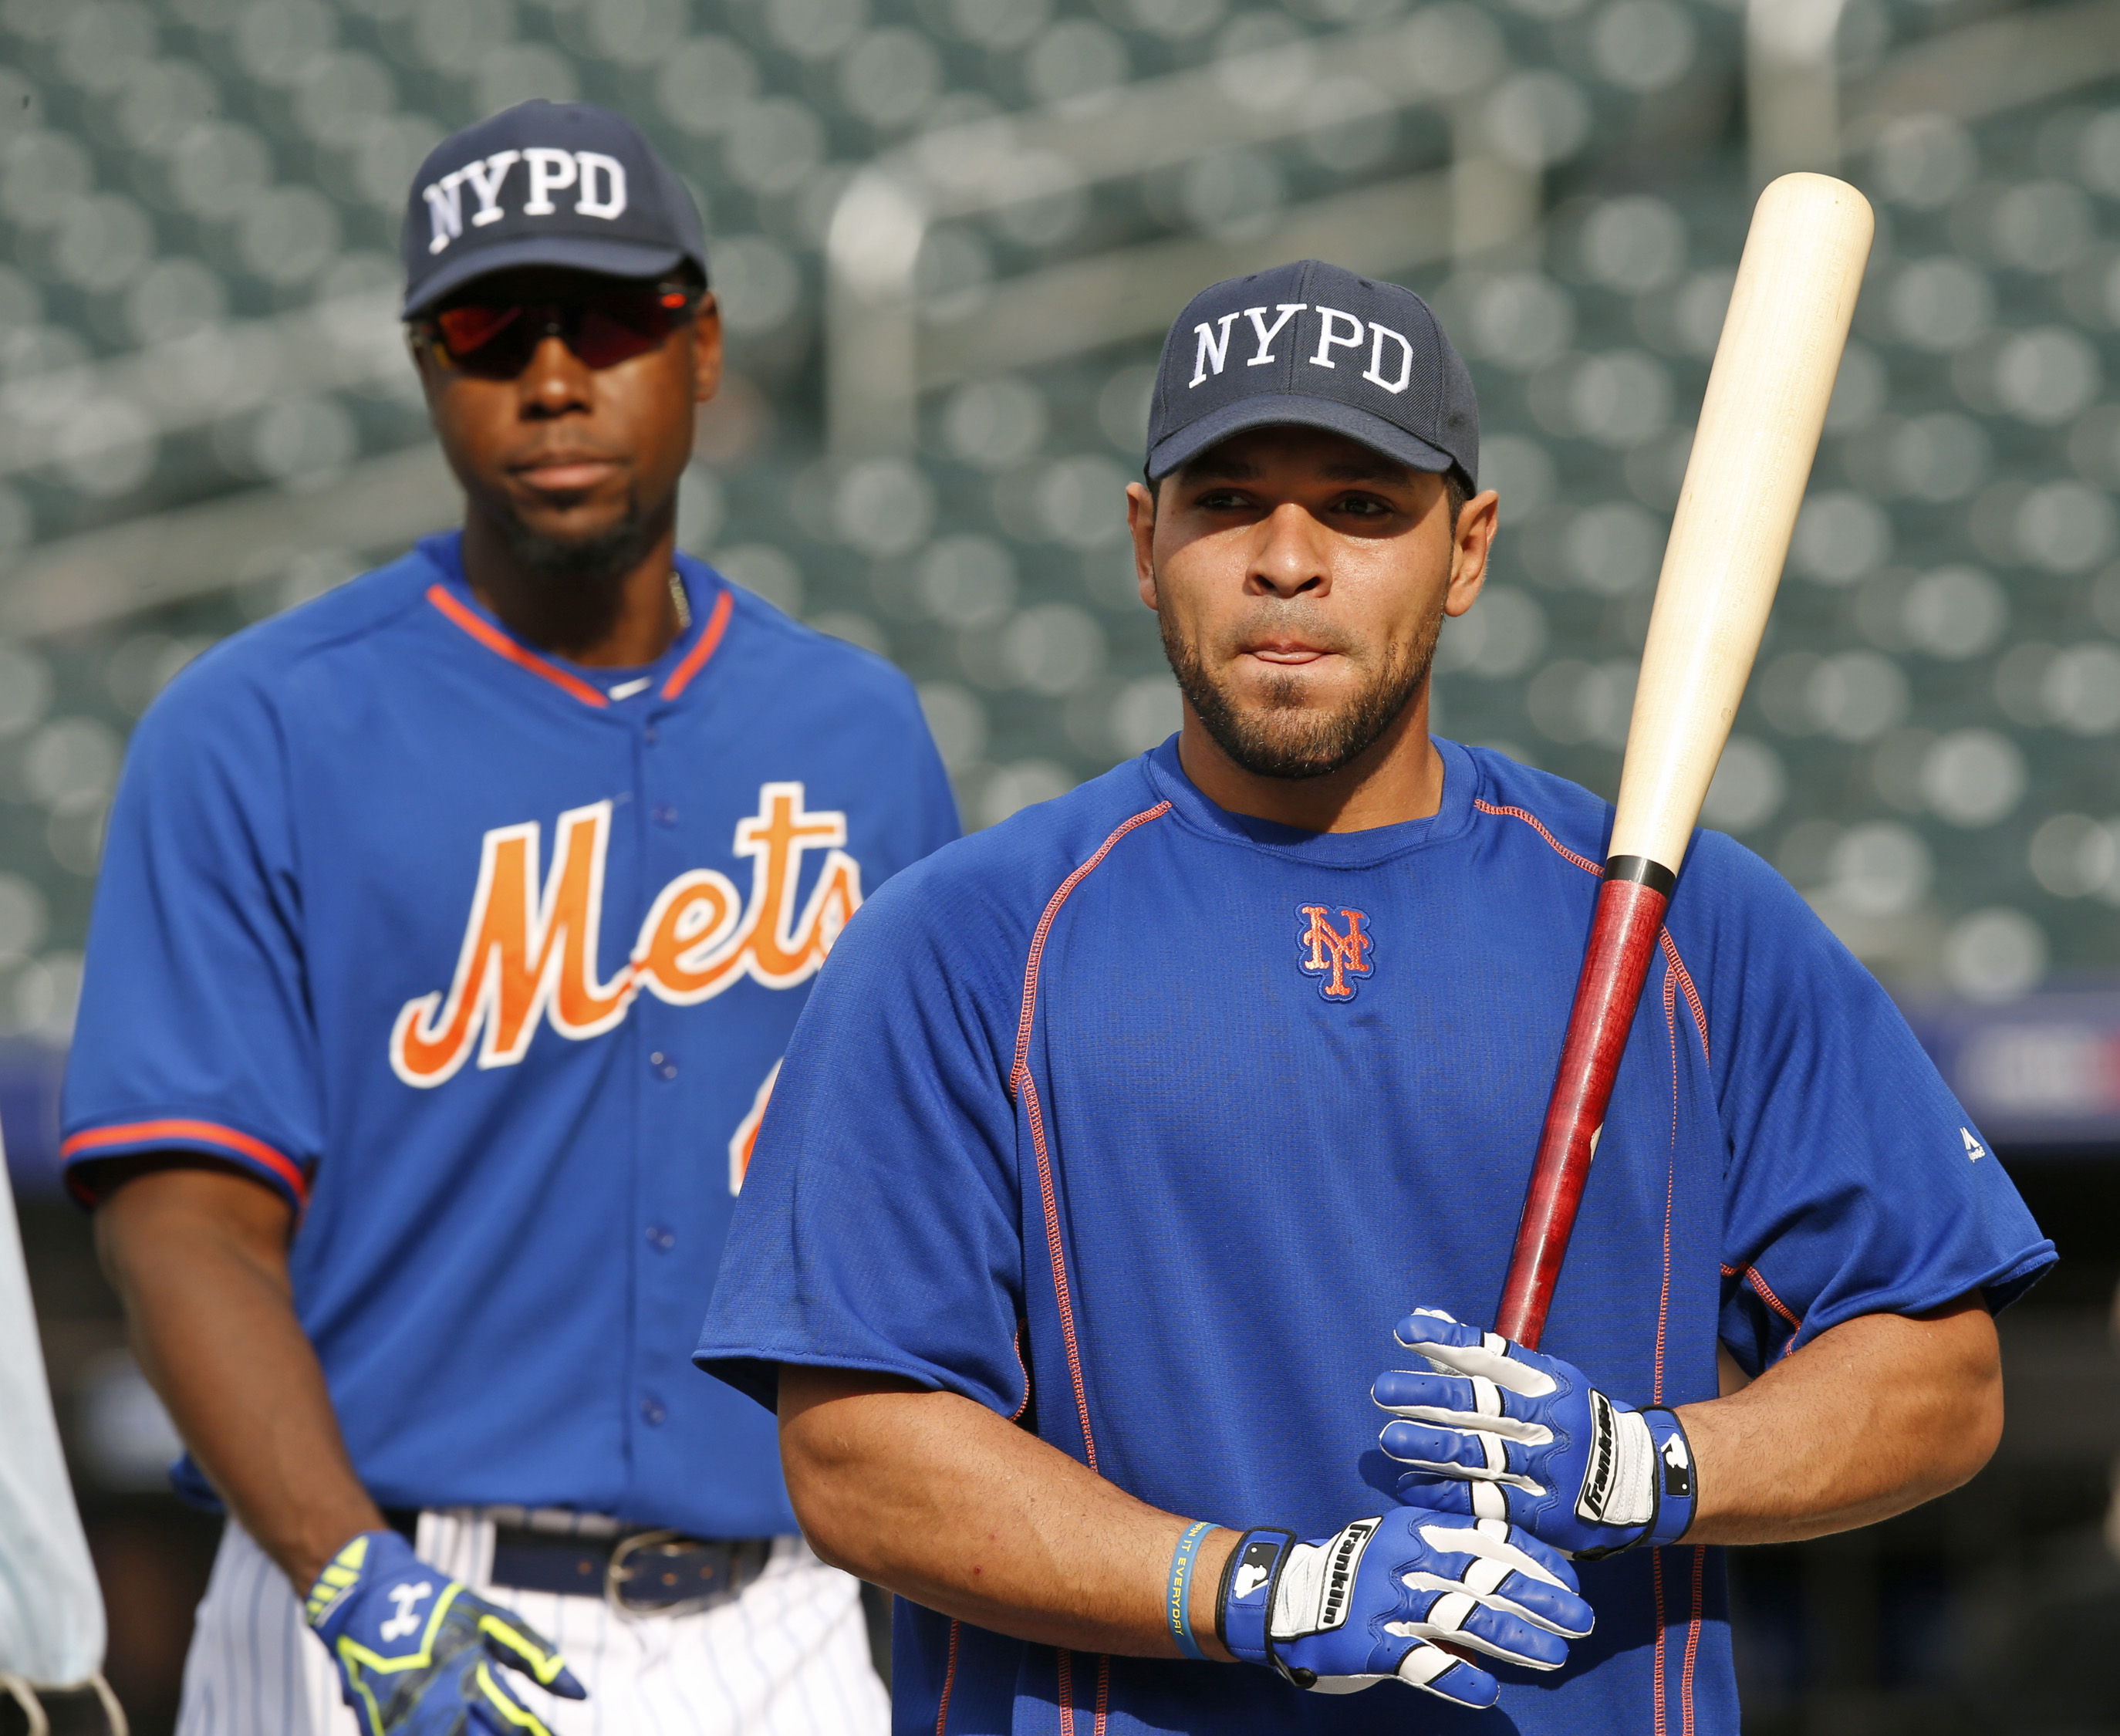 New York Mets players, including John Mayberry Jr., and Johnny Monell, wear New York Police Department hats in memory of slain New York City police officer Brian Moore before a baseball game against the Baltimore Orioles in New York, Tuesday, May 5, 2015.